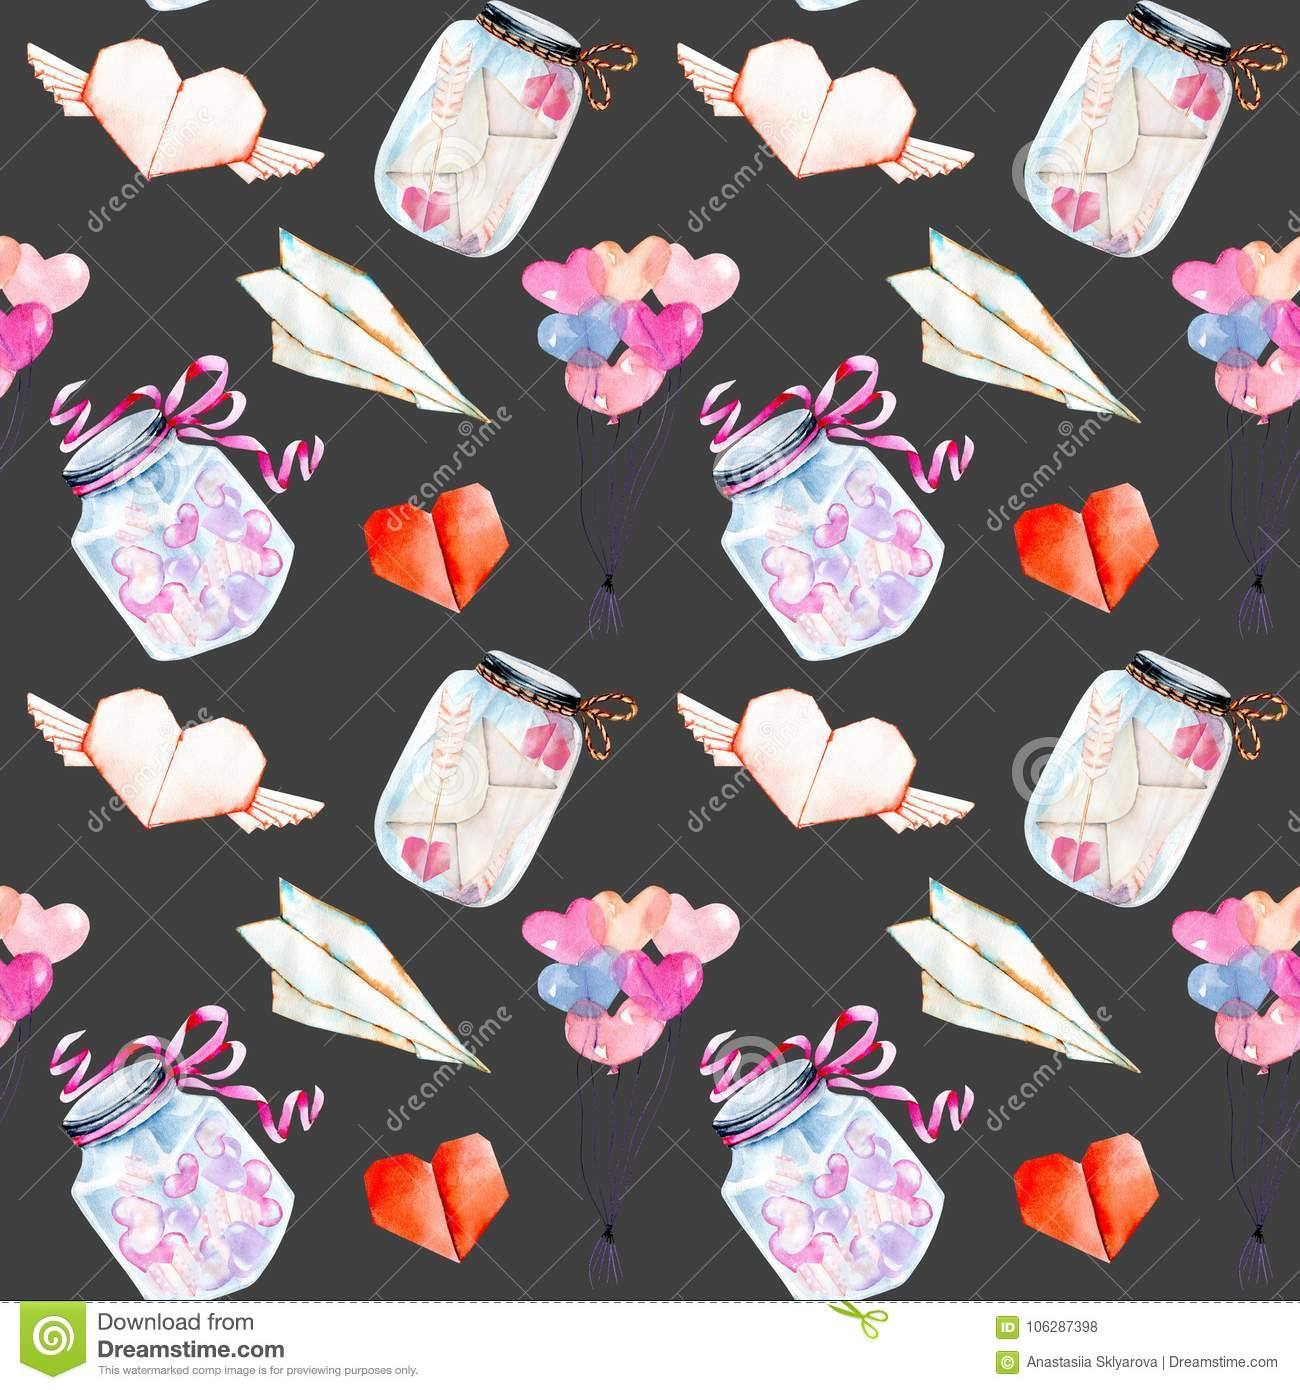 Valentines Day Romantic Watercolor Elements Seamless Pattern Air